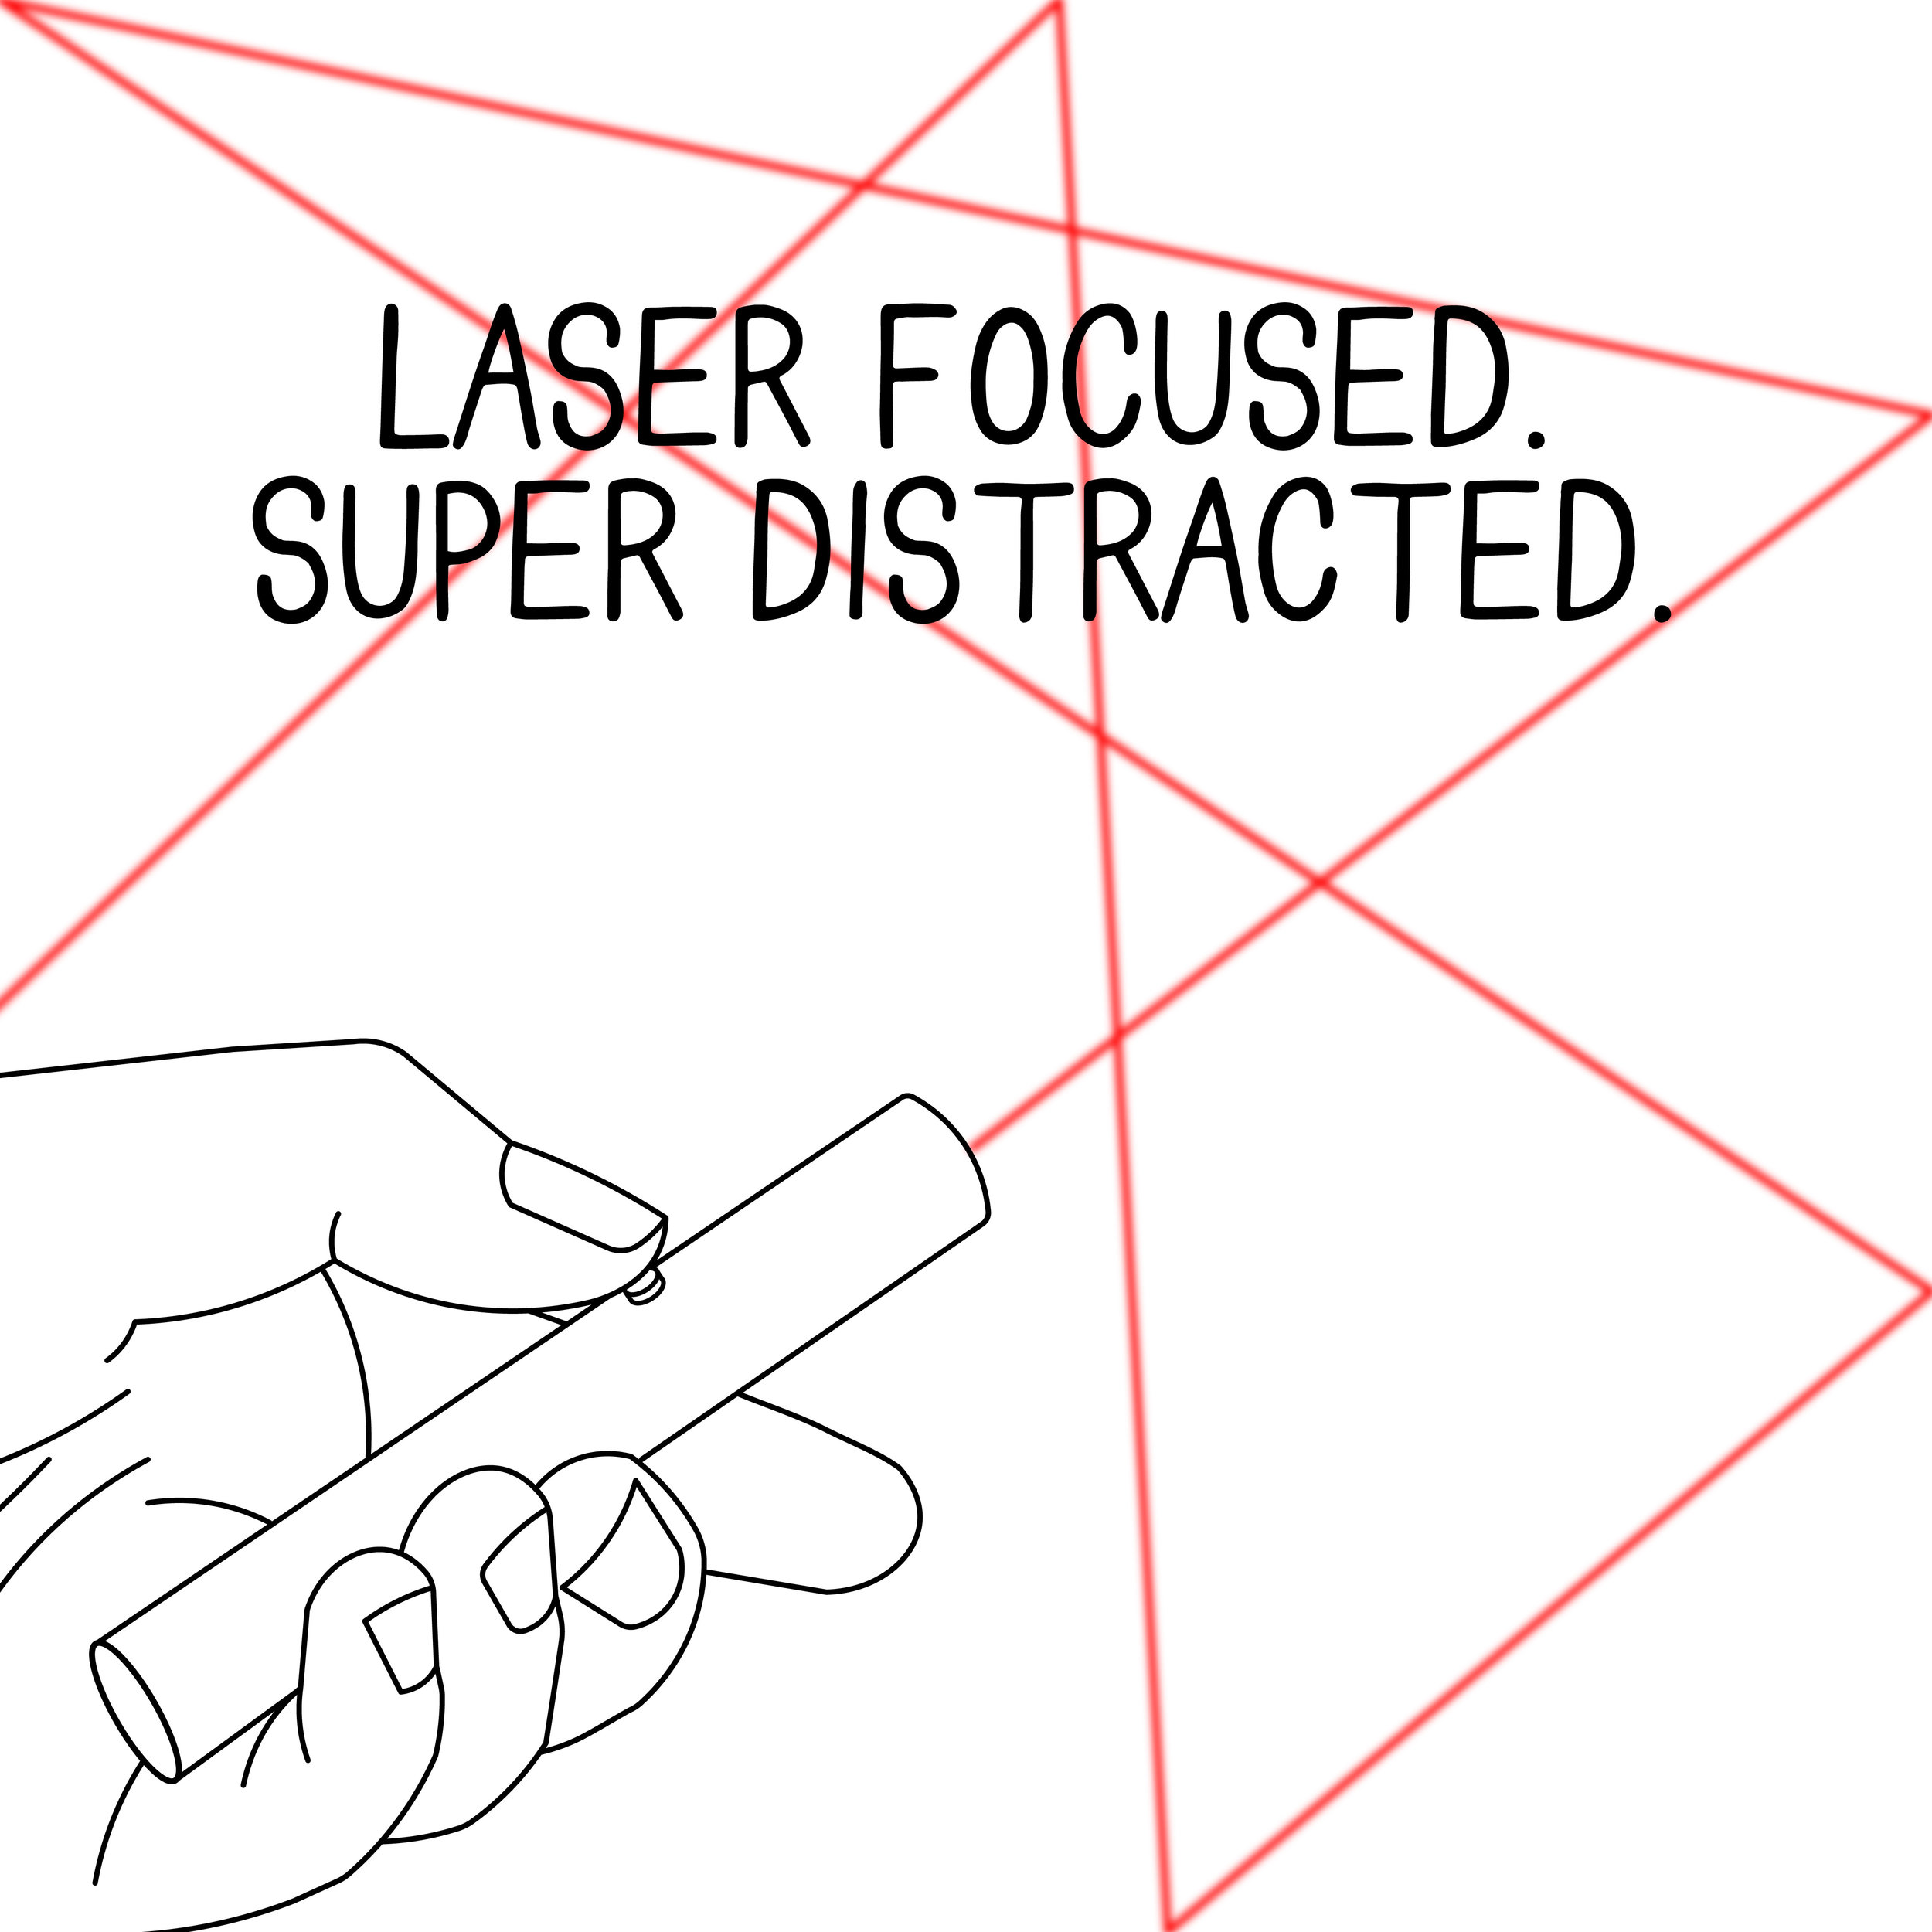 laserfocused-01.jpg